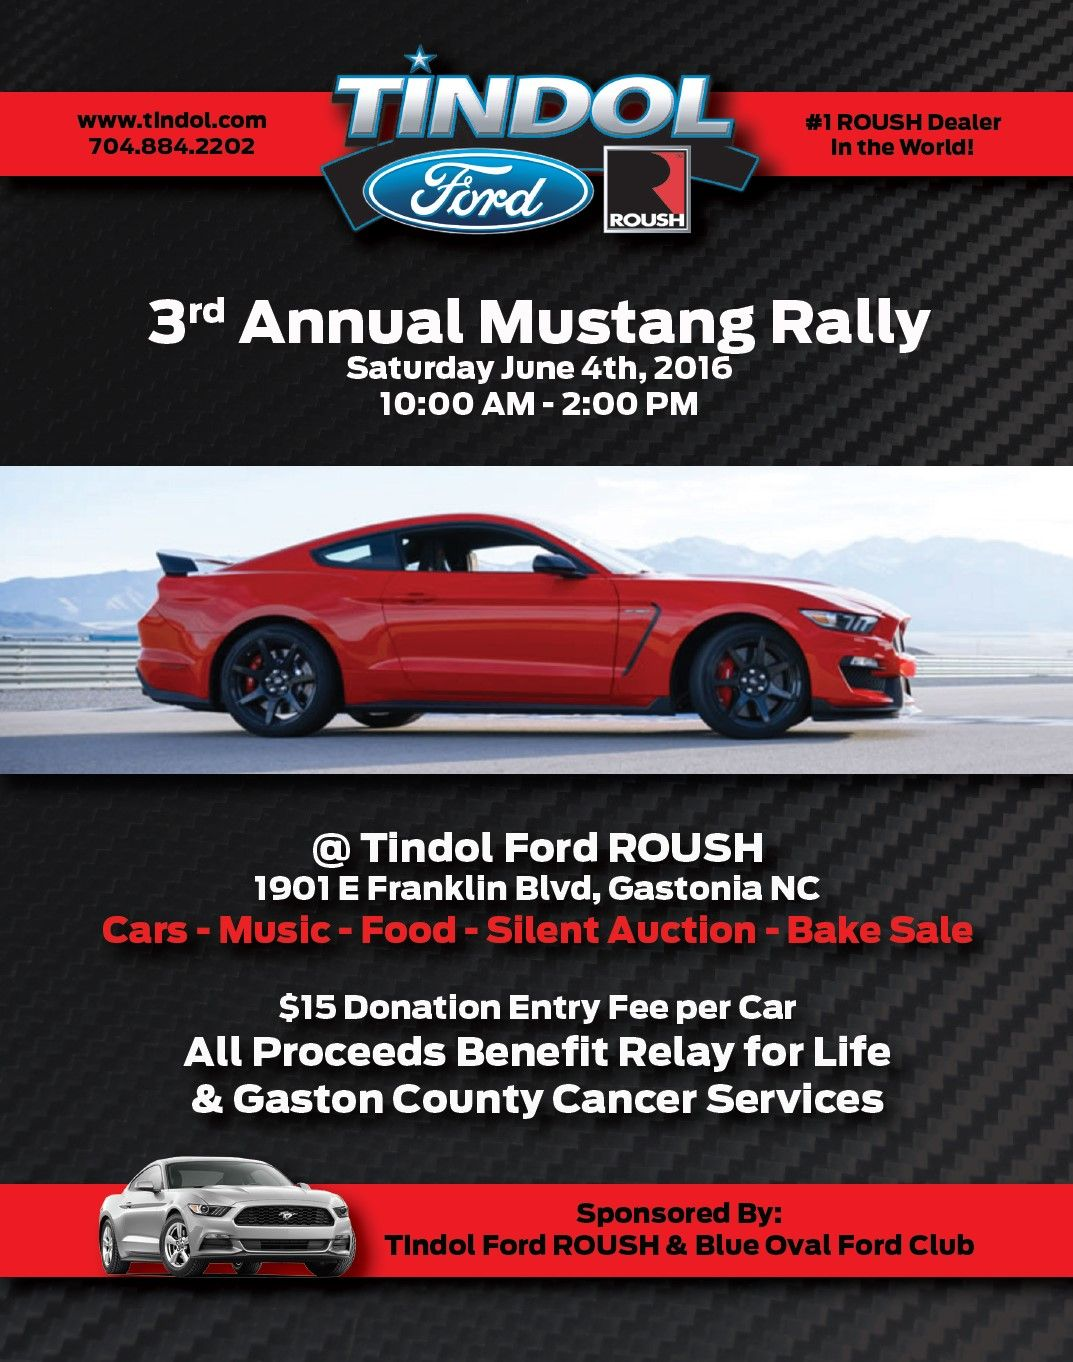 Check out all of Tindol Ford Subaru ROUSH's events at http